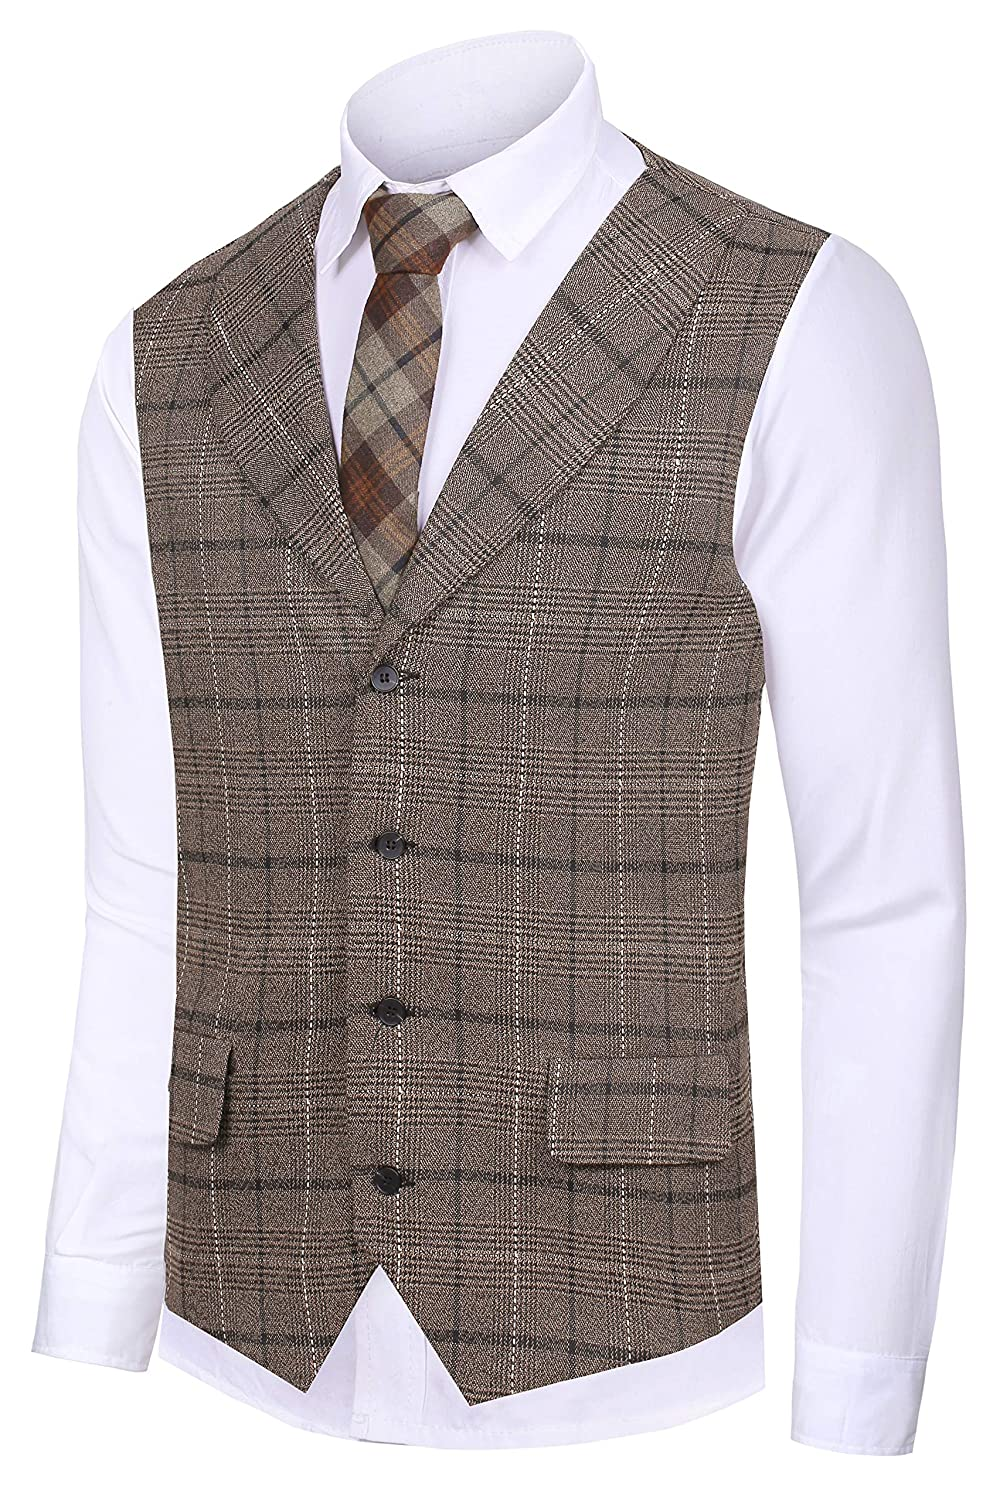 9482b5cb1035 Hanayome Men's Gentleman Top Design Casual Waistcoat Business Suit Vest  VS17 VS17A01